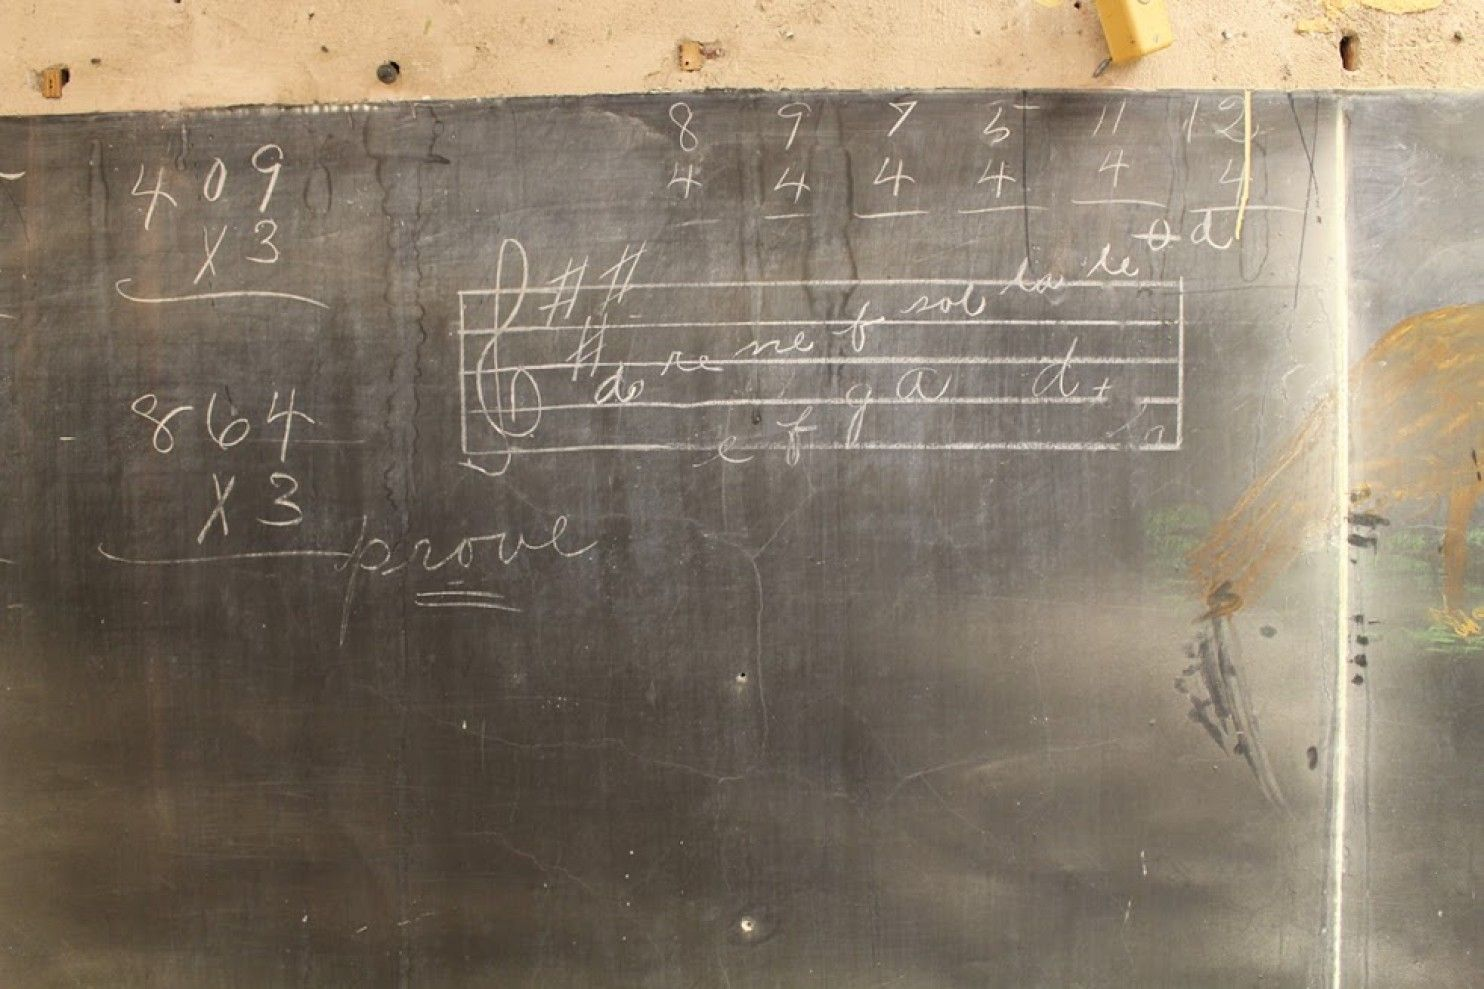 Haunting Chalkboard Drawings Frozen In Time For 100 Years Discovered In Oklahoma School Chalkboard Drawings School Chalkboard School